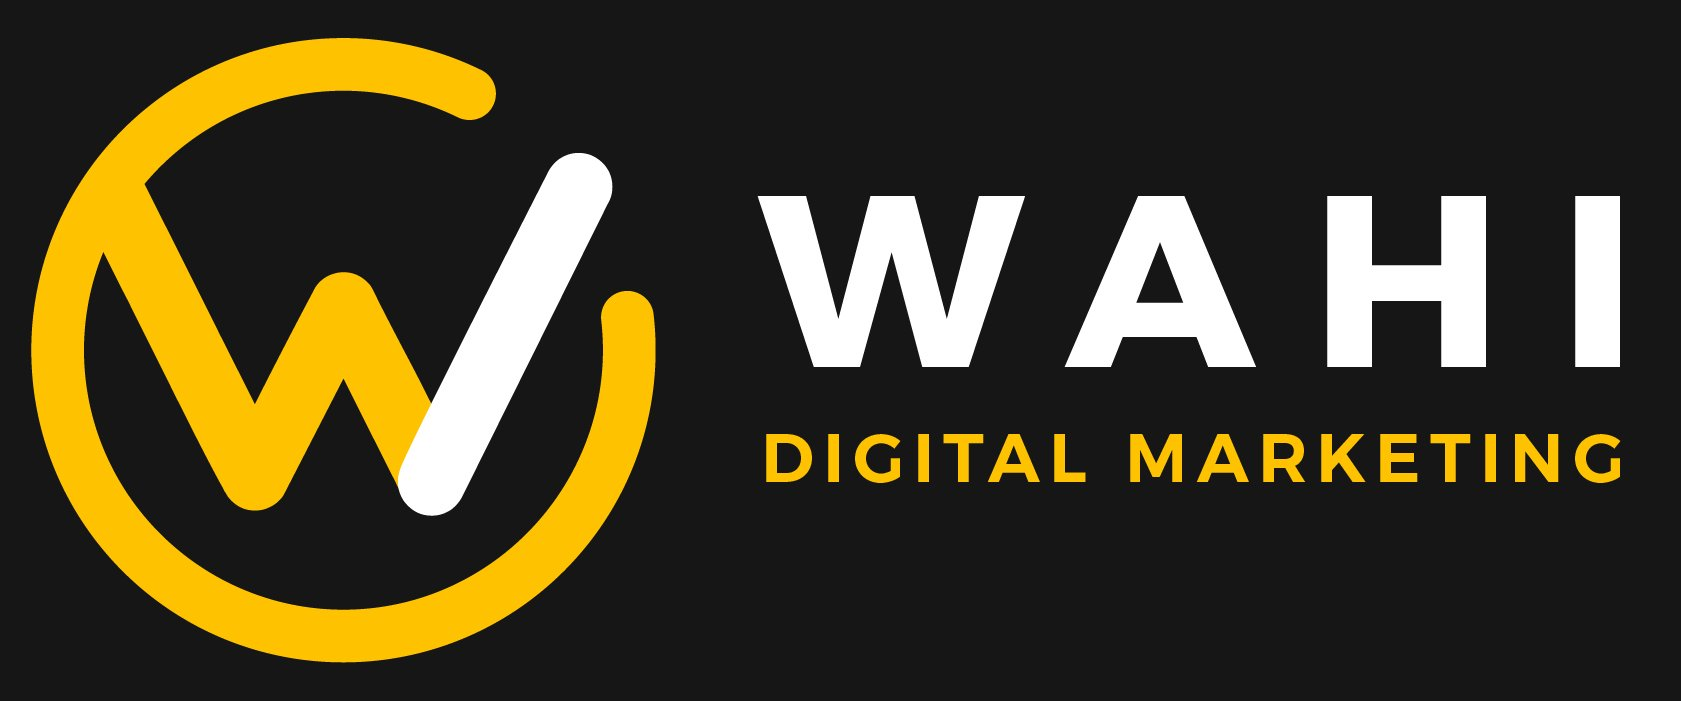 wahi digital marketing logo on black background